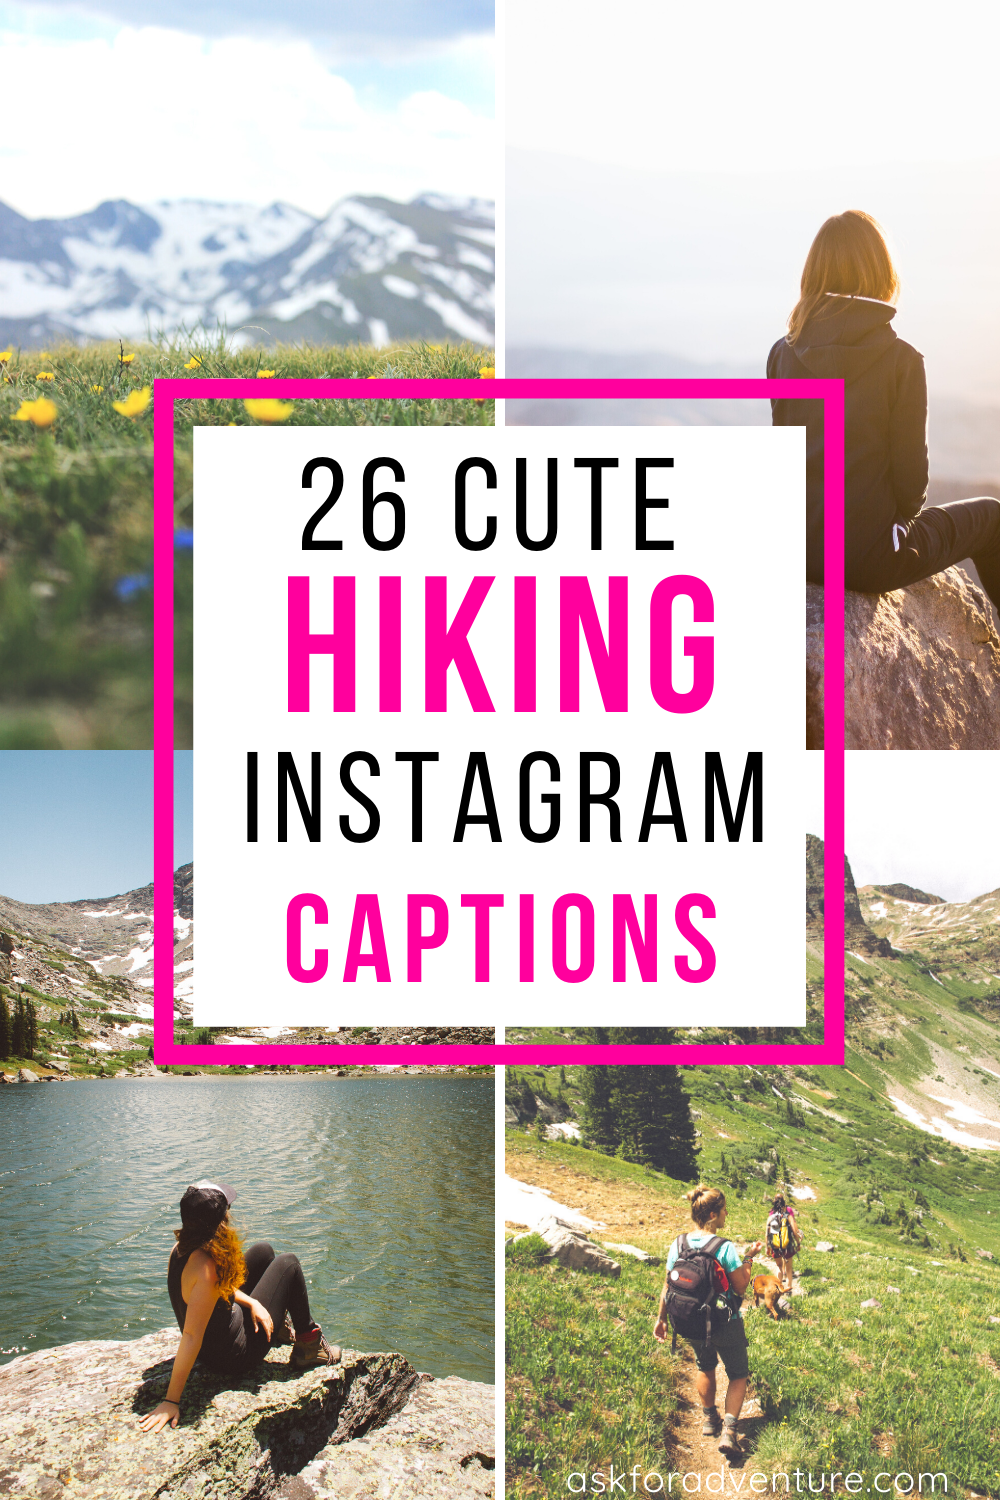 26 Good Instagram Captions for Hiking Pictures in 2020 ...